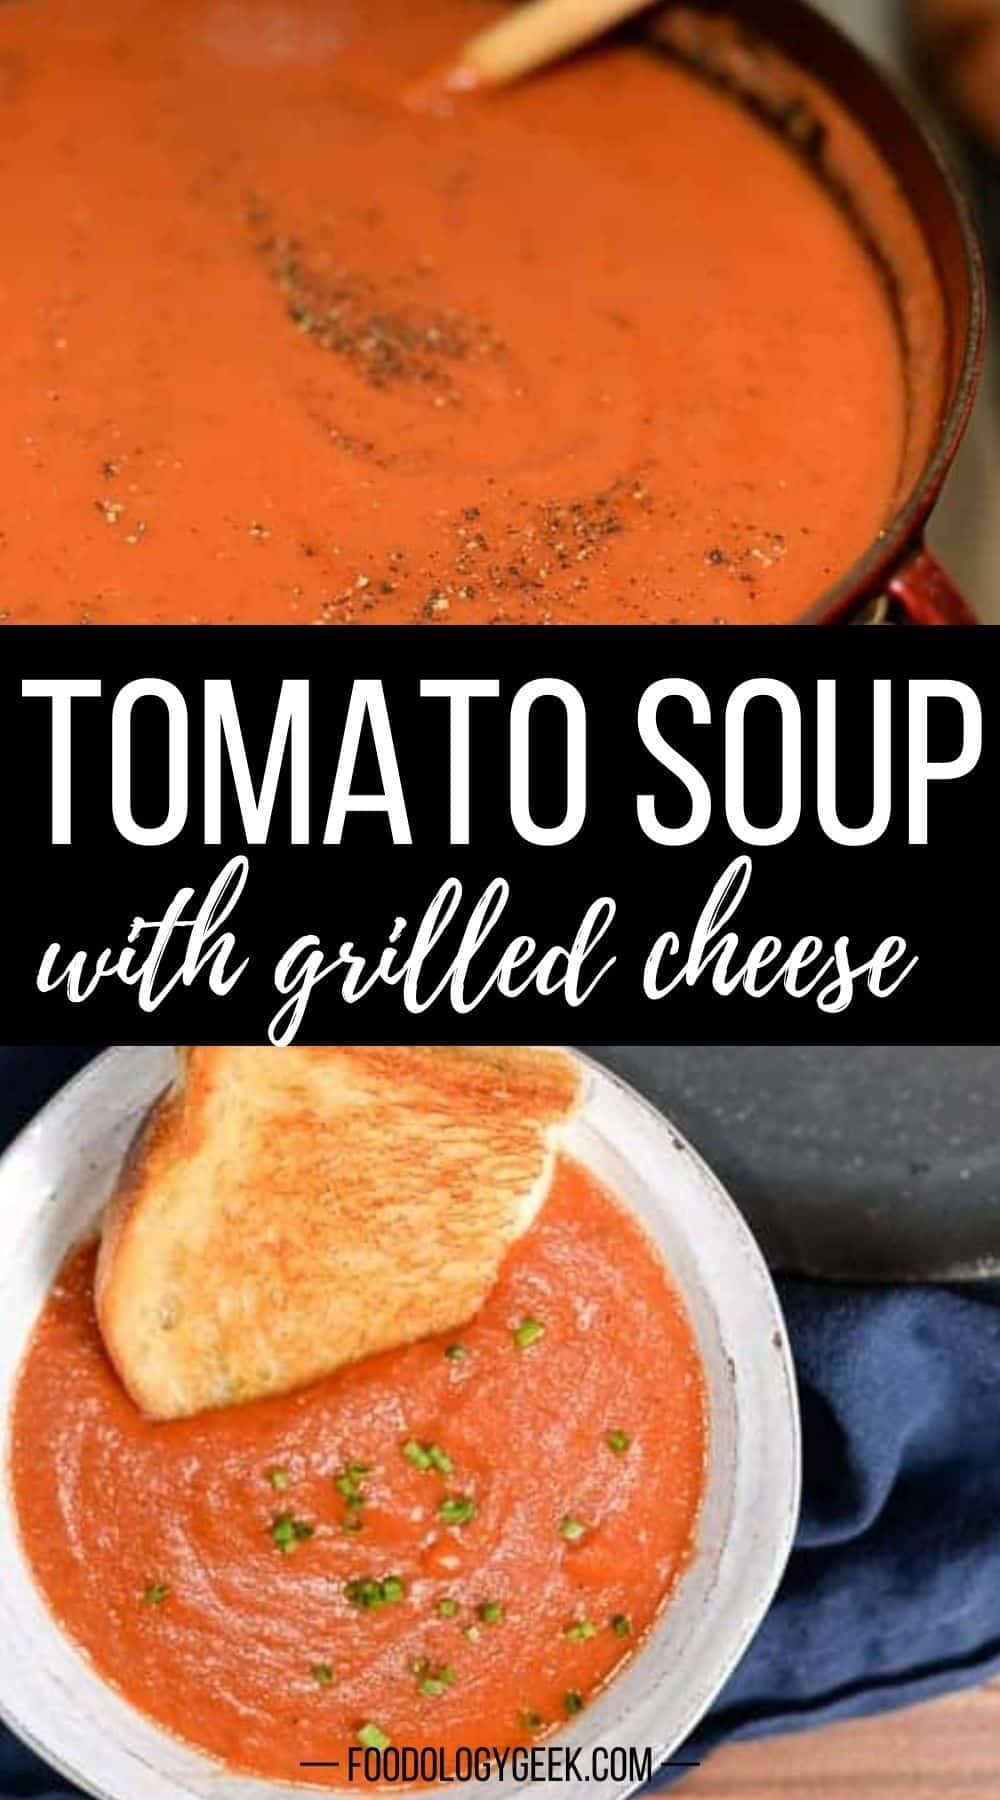 The easy tomato soup is made with canned tomatoes, fresh herbs, and broth. Top with a little creme fraiche and serve with grilled cheese.